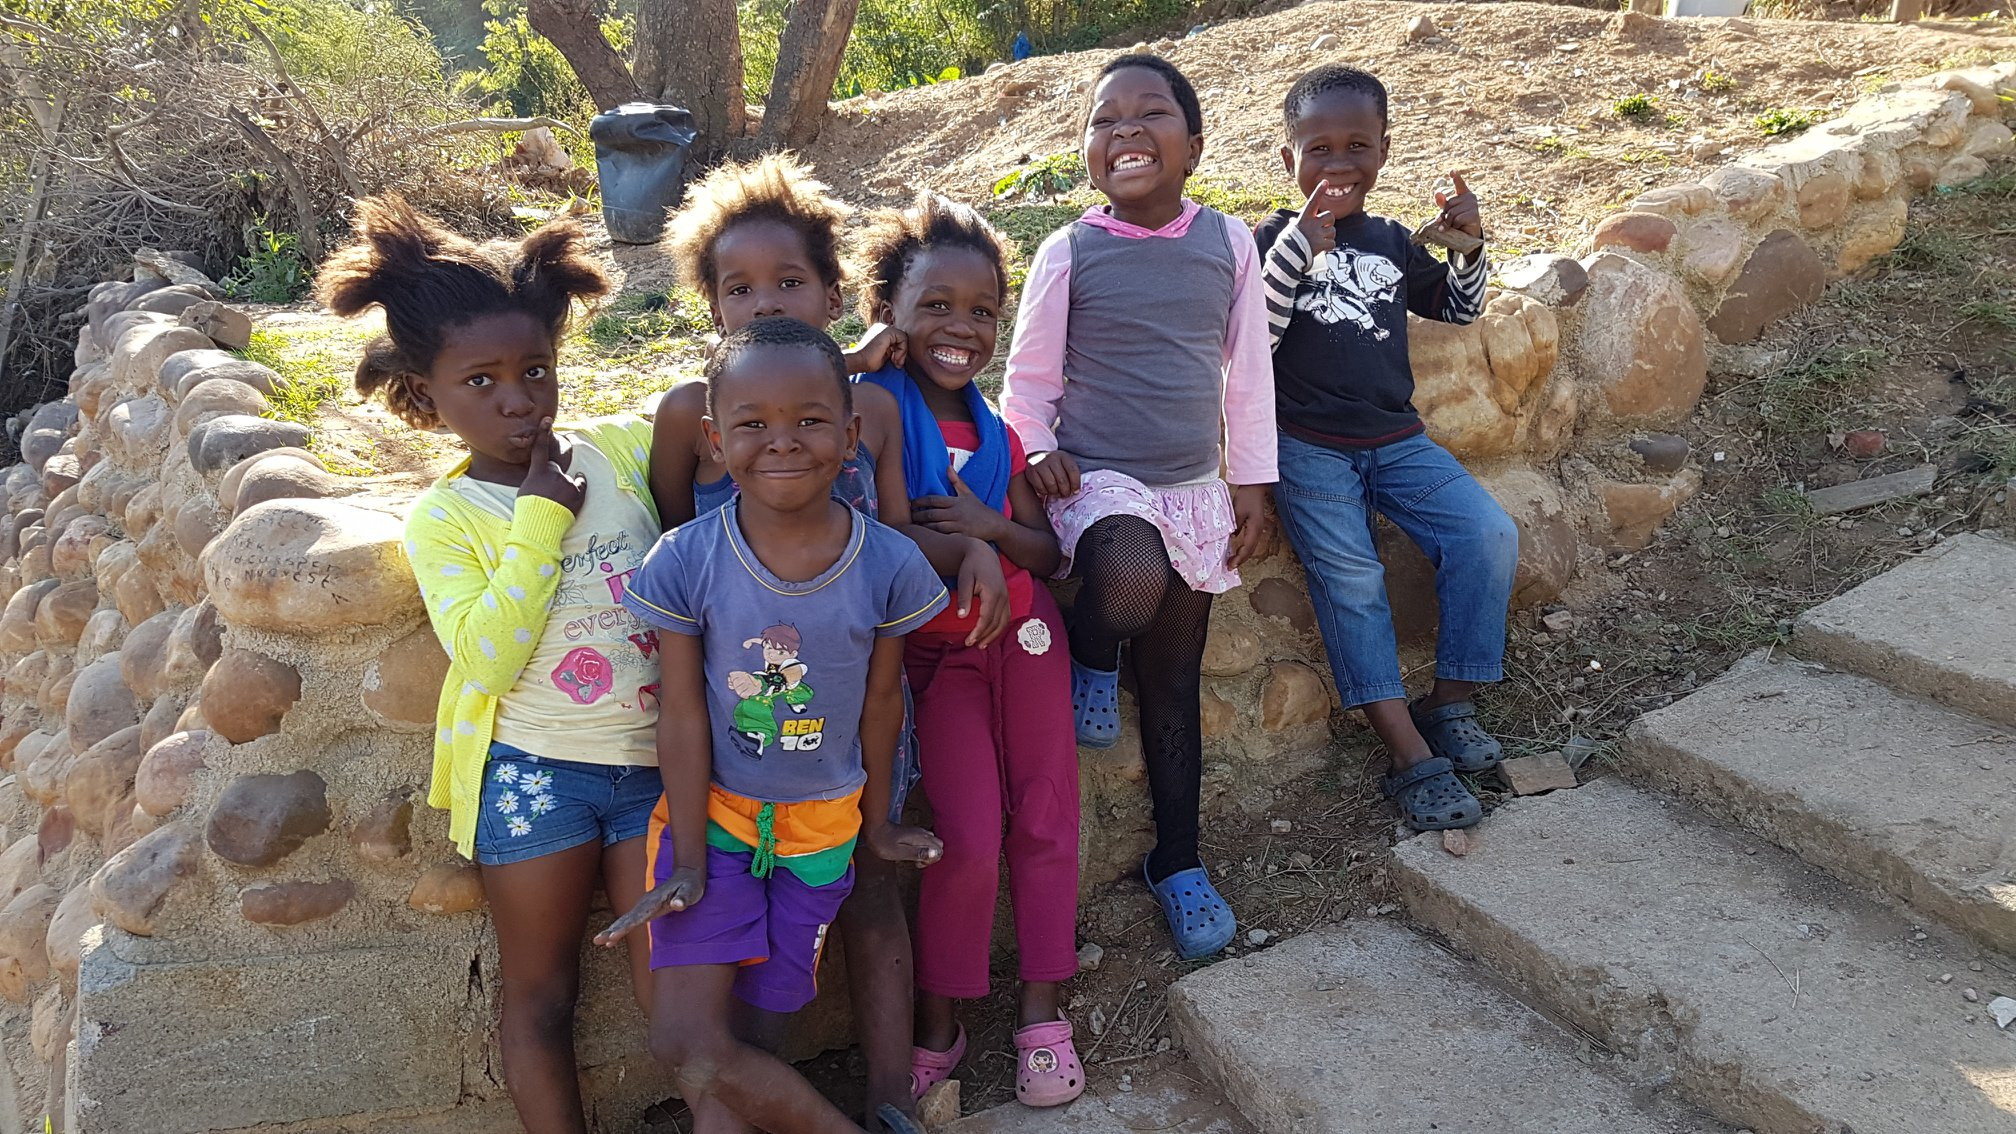 We mentor hundreds of kids in South Africa facing poverty & disease and have seen first hand how love changes futures.